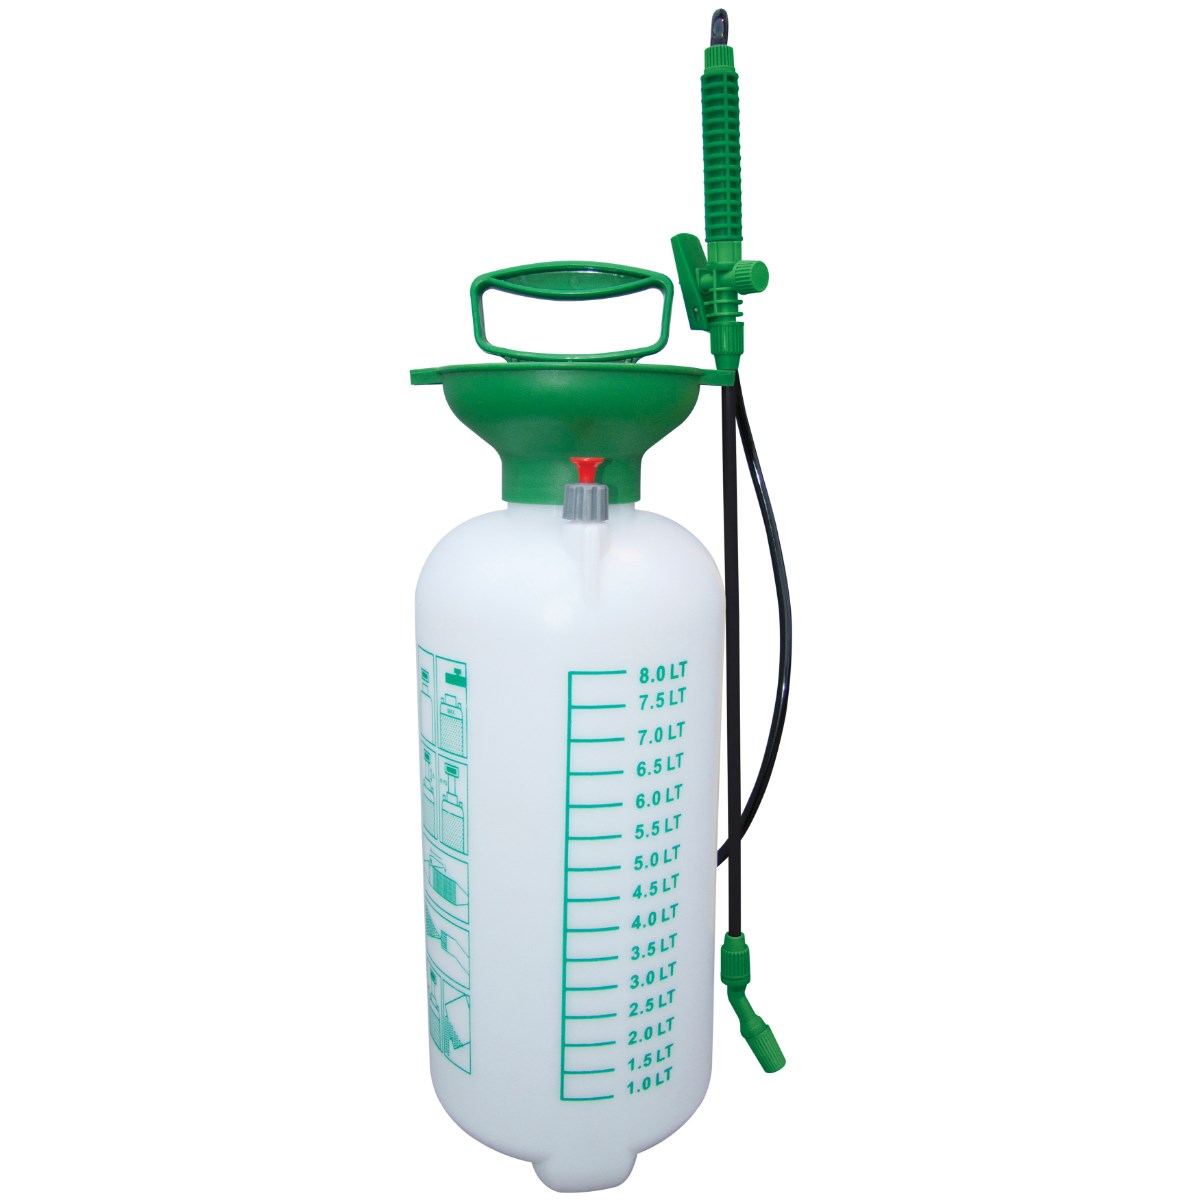 Image of 8 litre pressure sprayer